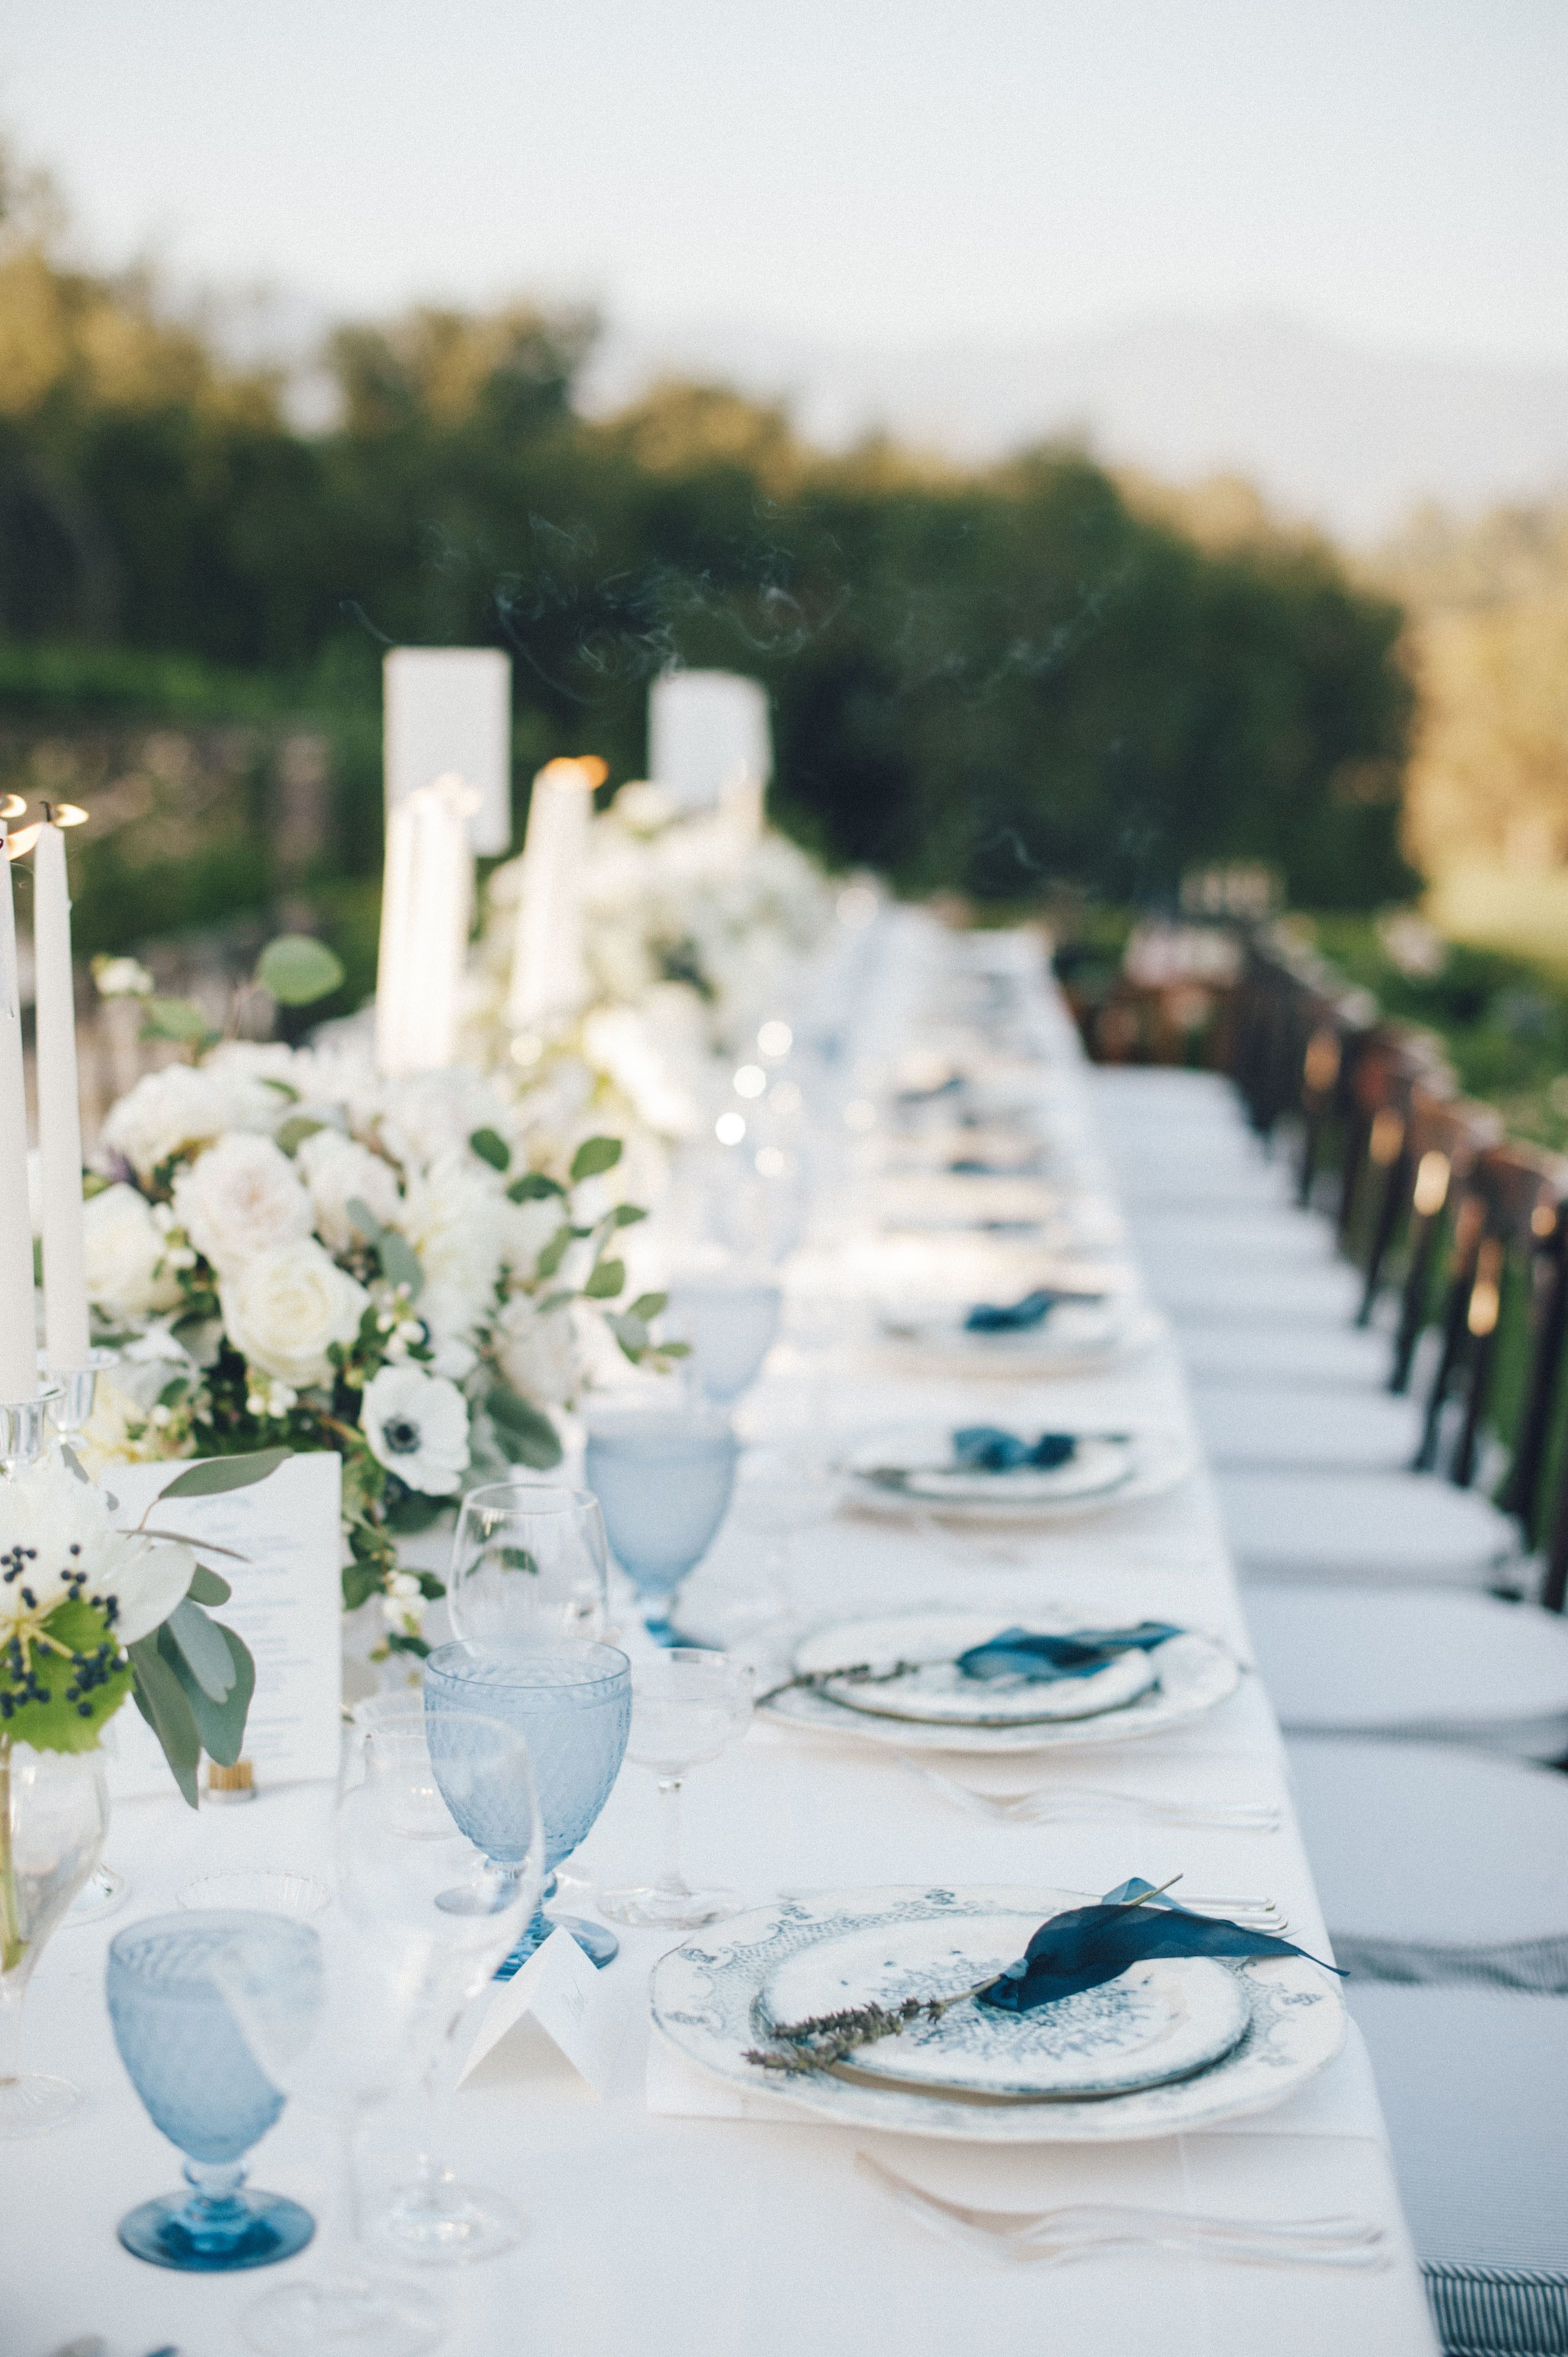 Astrologyinspired wedding designed with shades of blue